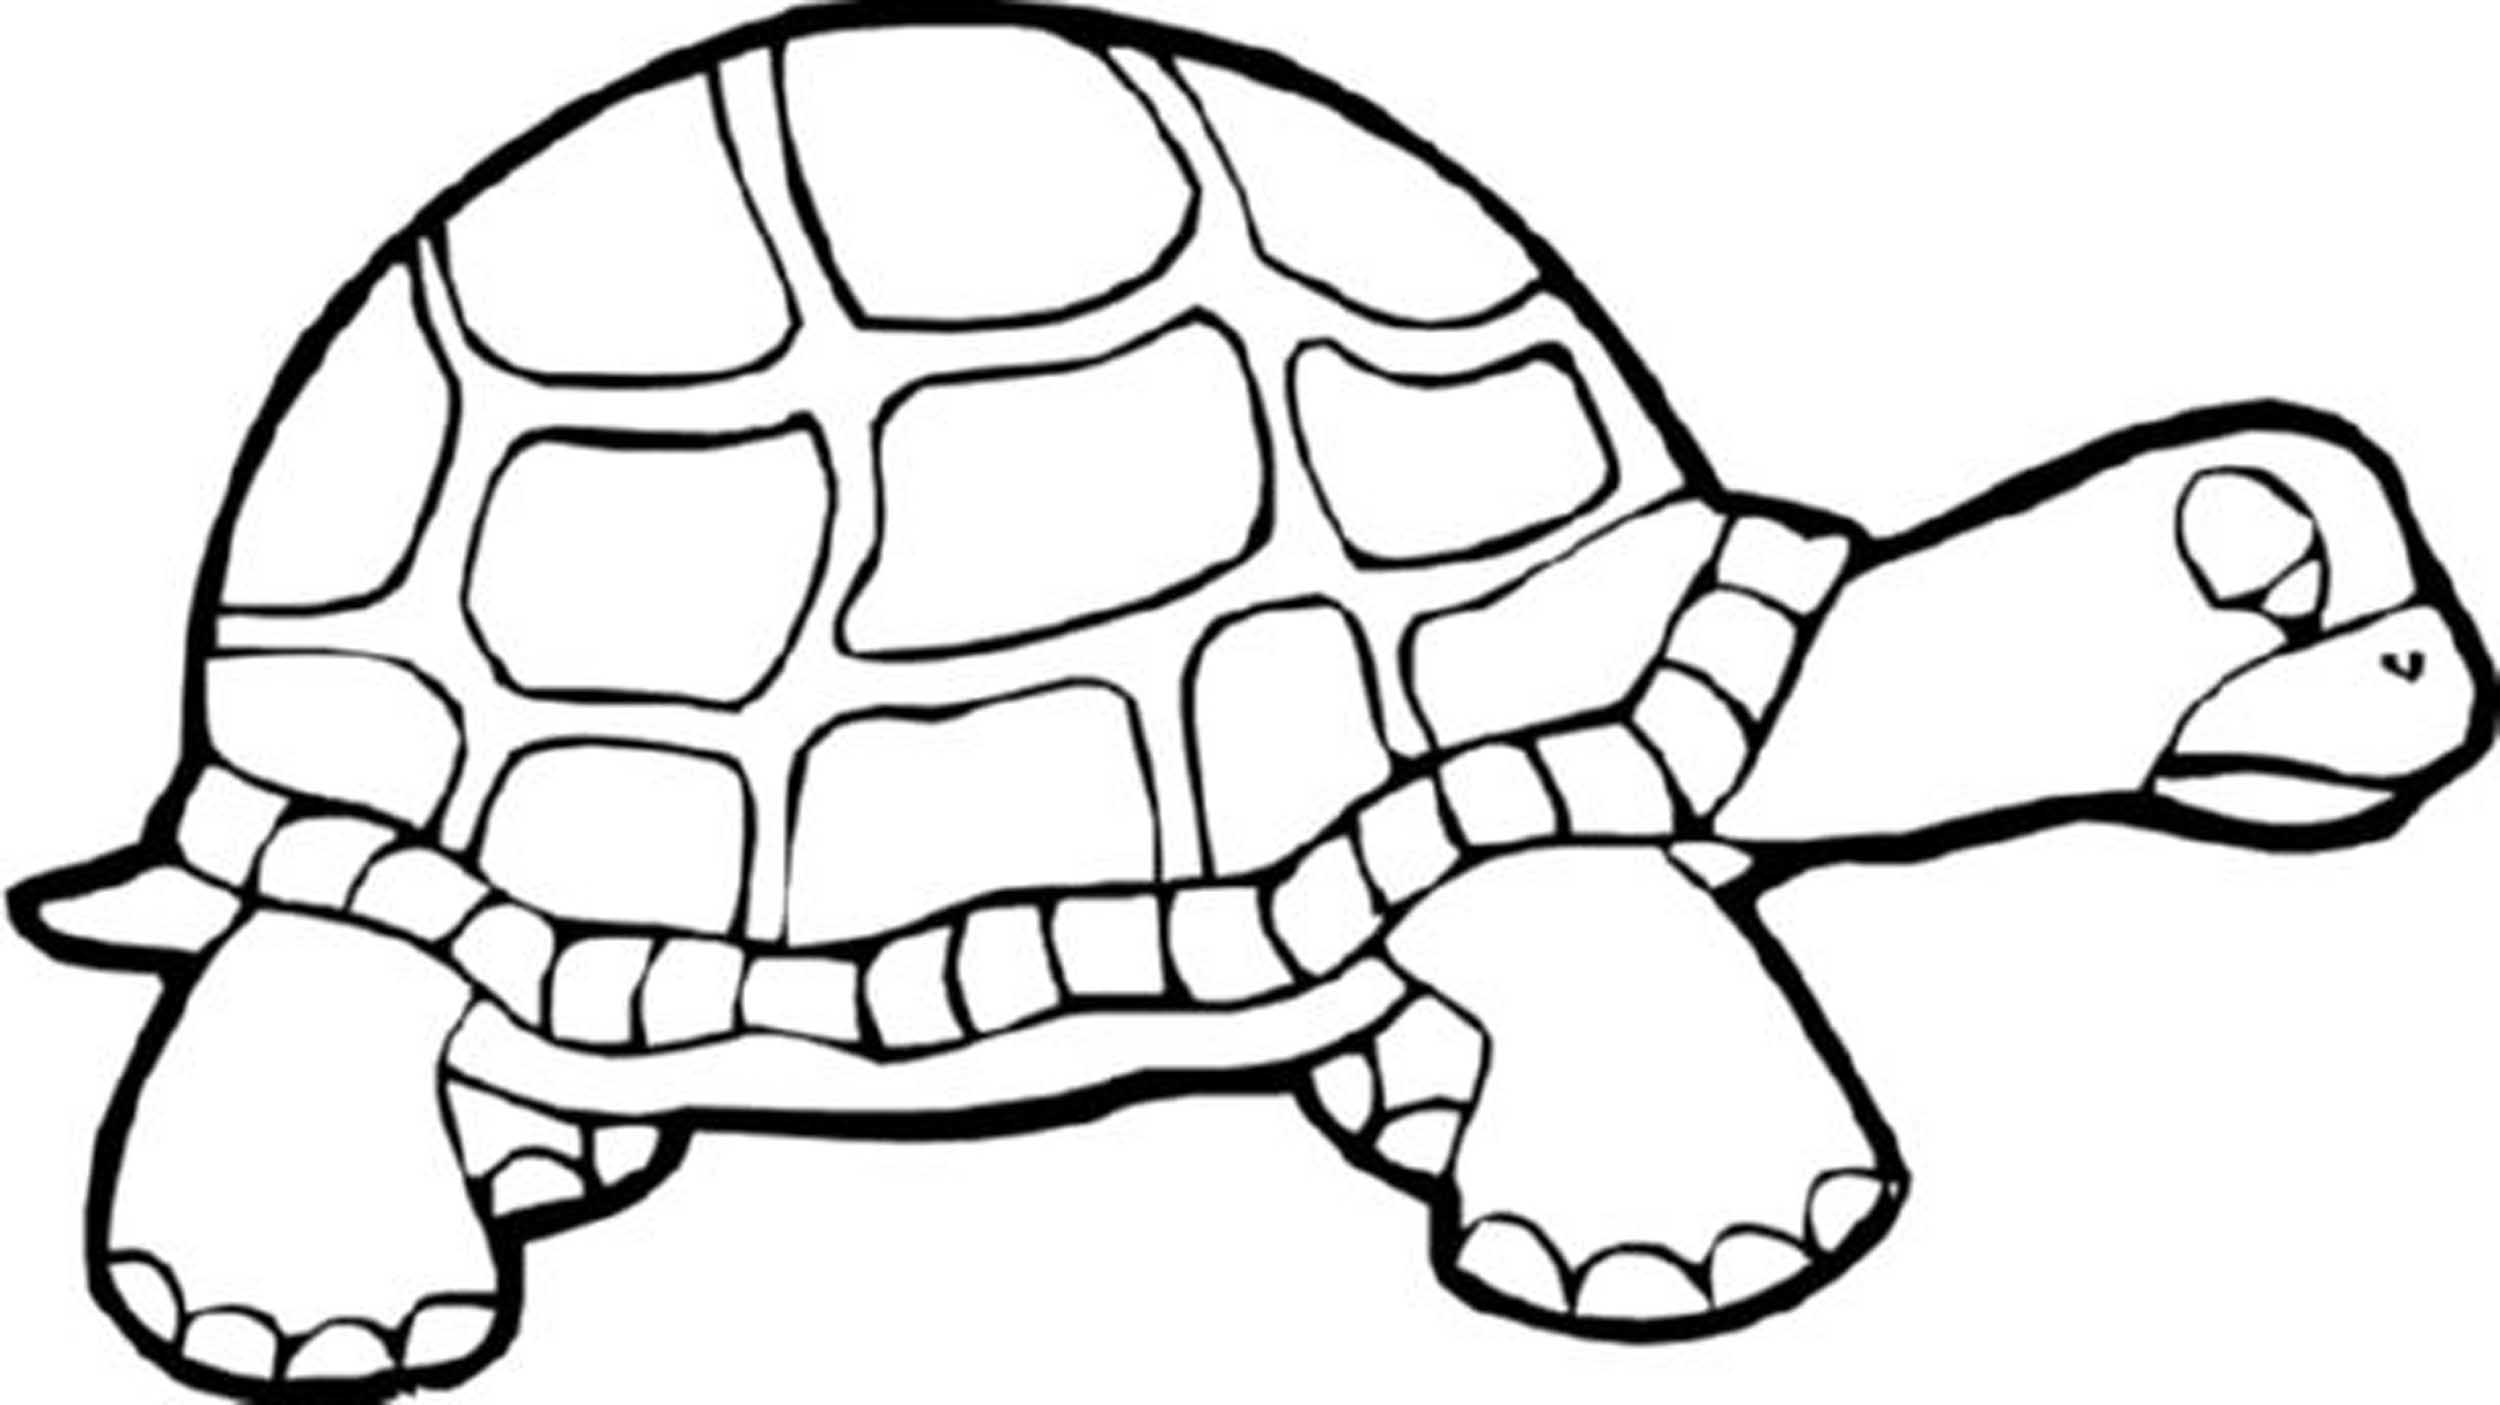 tortoise coloring page turtles to print for free turtles kids coloring pages page coloring tortoise 1 1